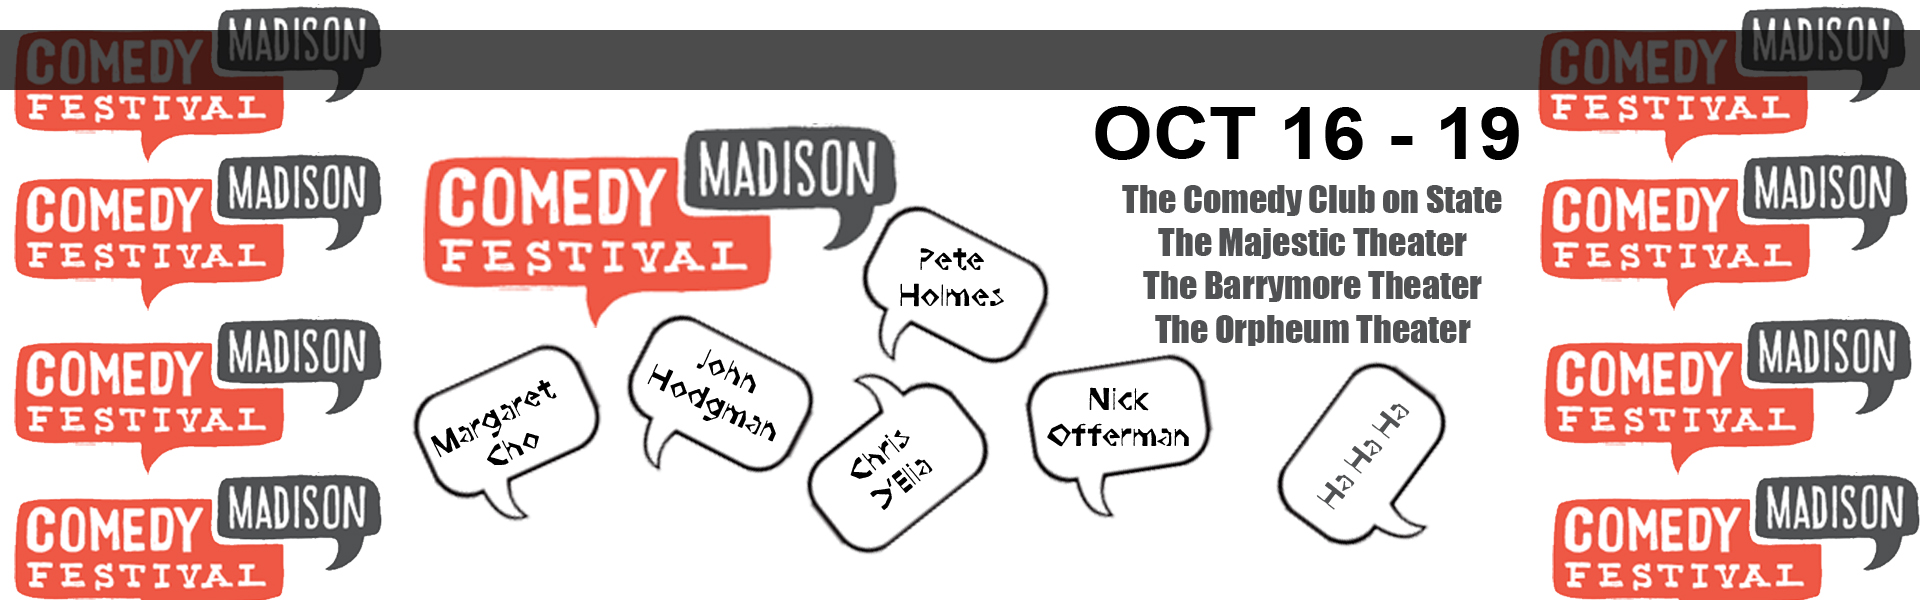 Madison-Comedy-Fest-homepage-large